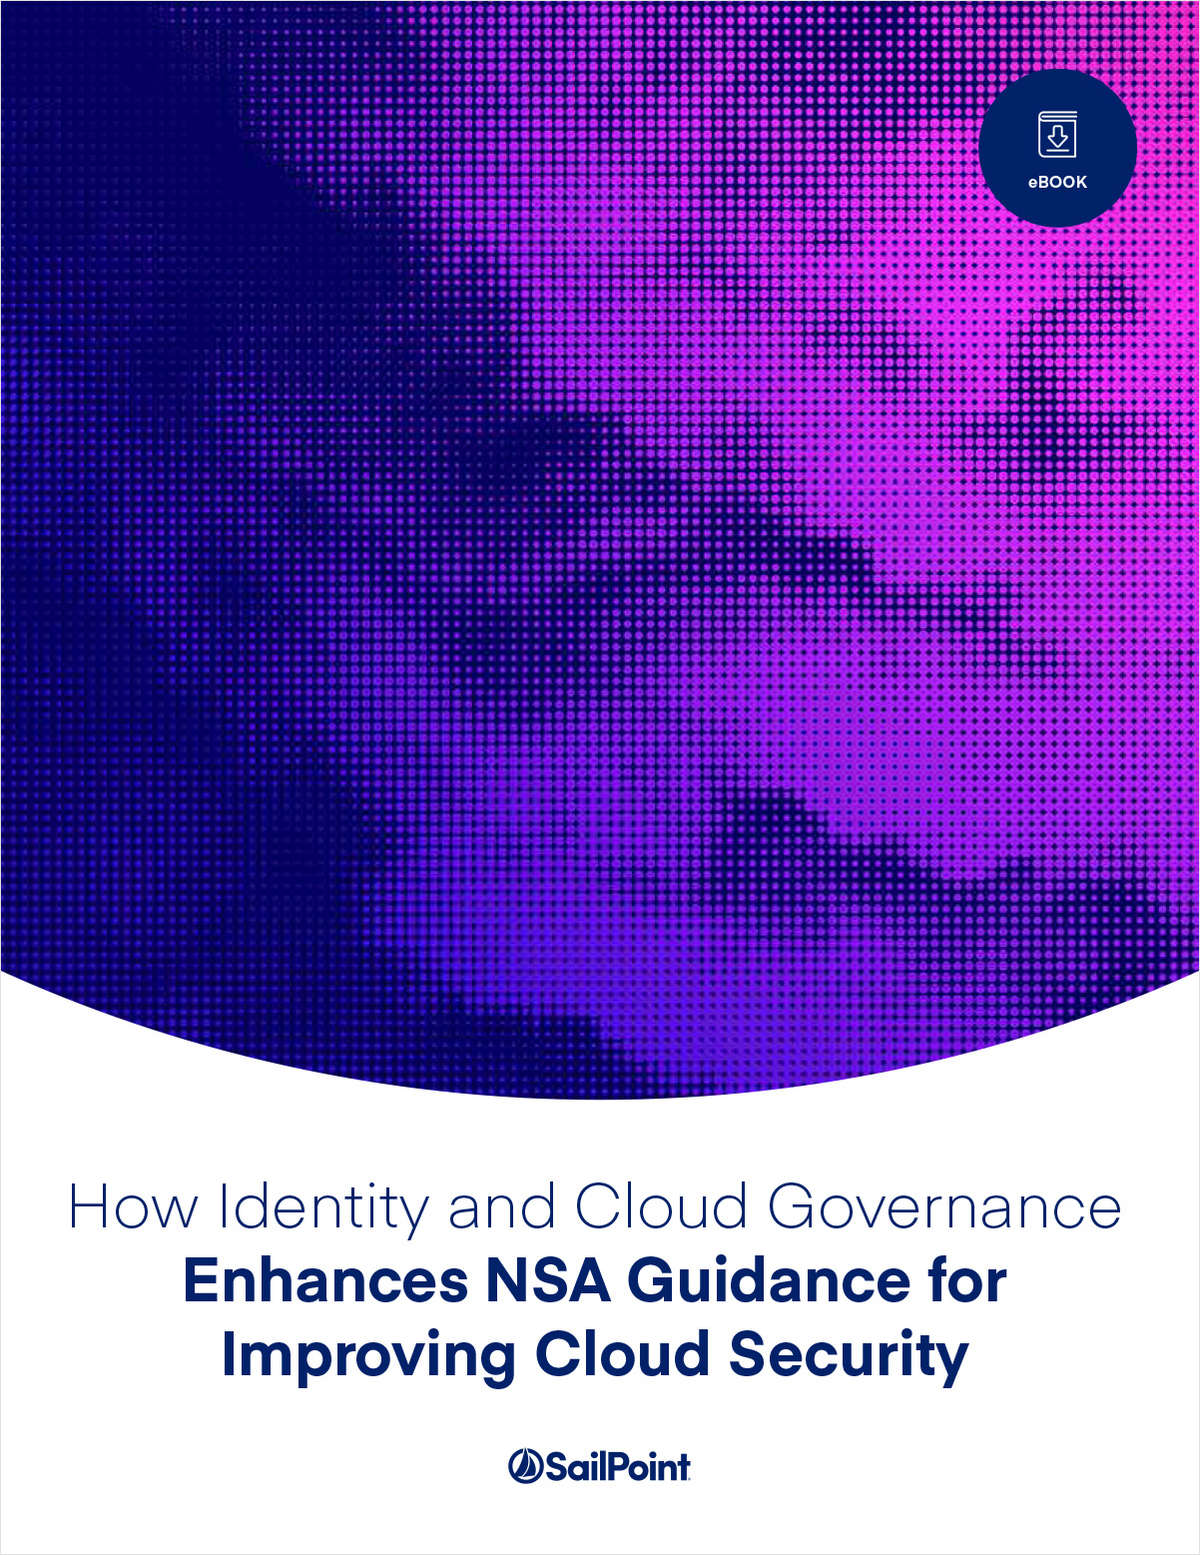 How Identity and Cloud Governance Enhances NSA Guidance for Improving Cloud Security